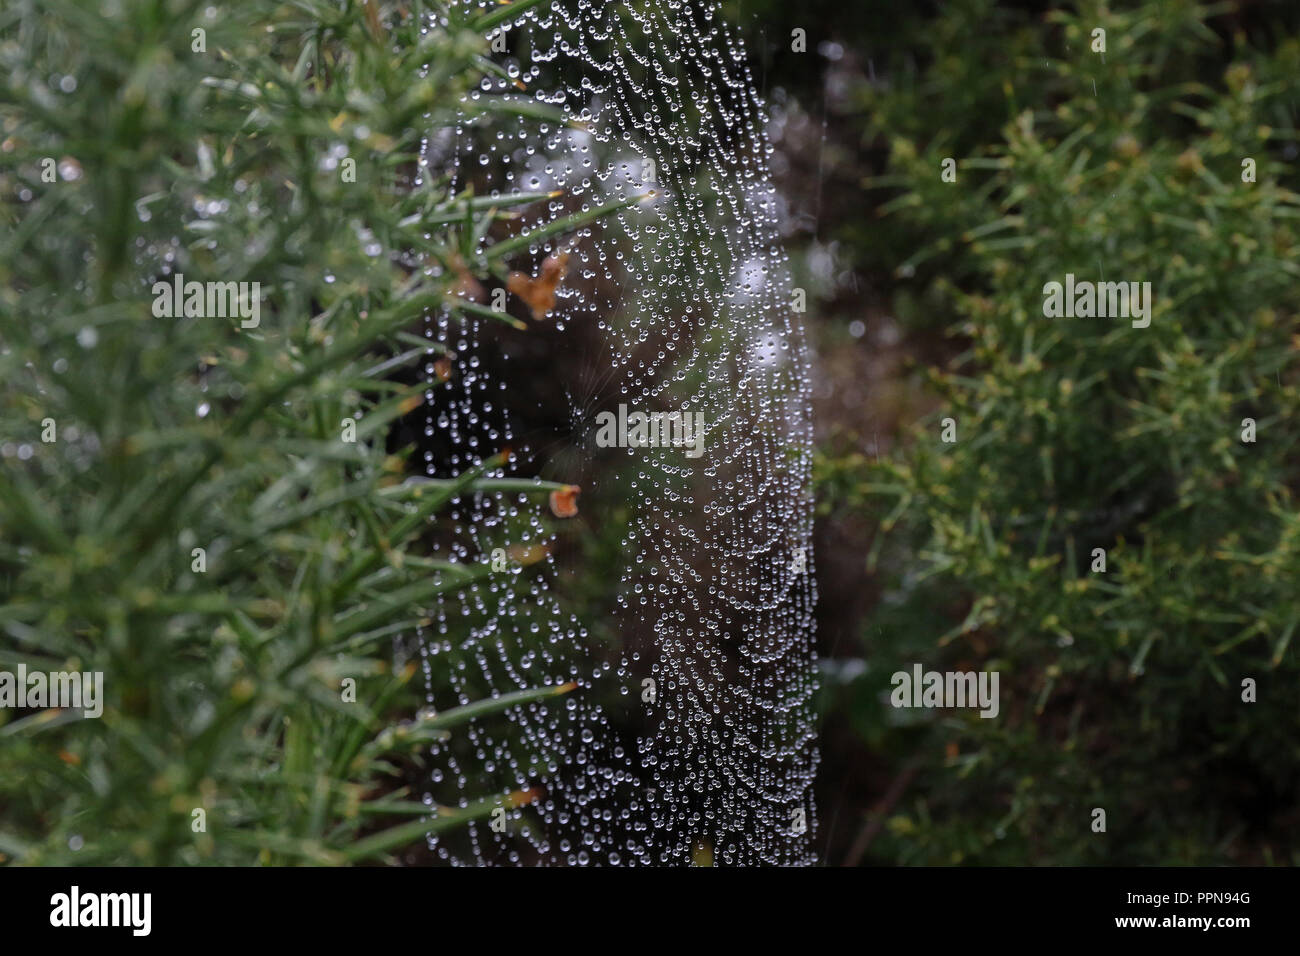 Ballycroy, County Mayo, Ireland. 27 September 2018. Irish weather - a grey day with widespread drizzle on the west coast of County Mayo. Raindrops on a spider's web. Credit: David Hunter/Alamy Live News. - Stock Image